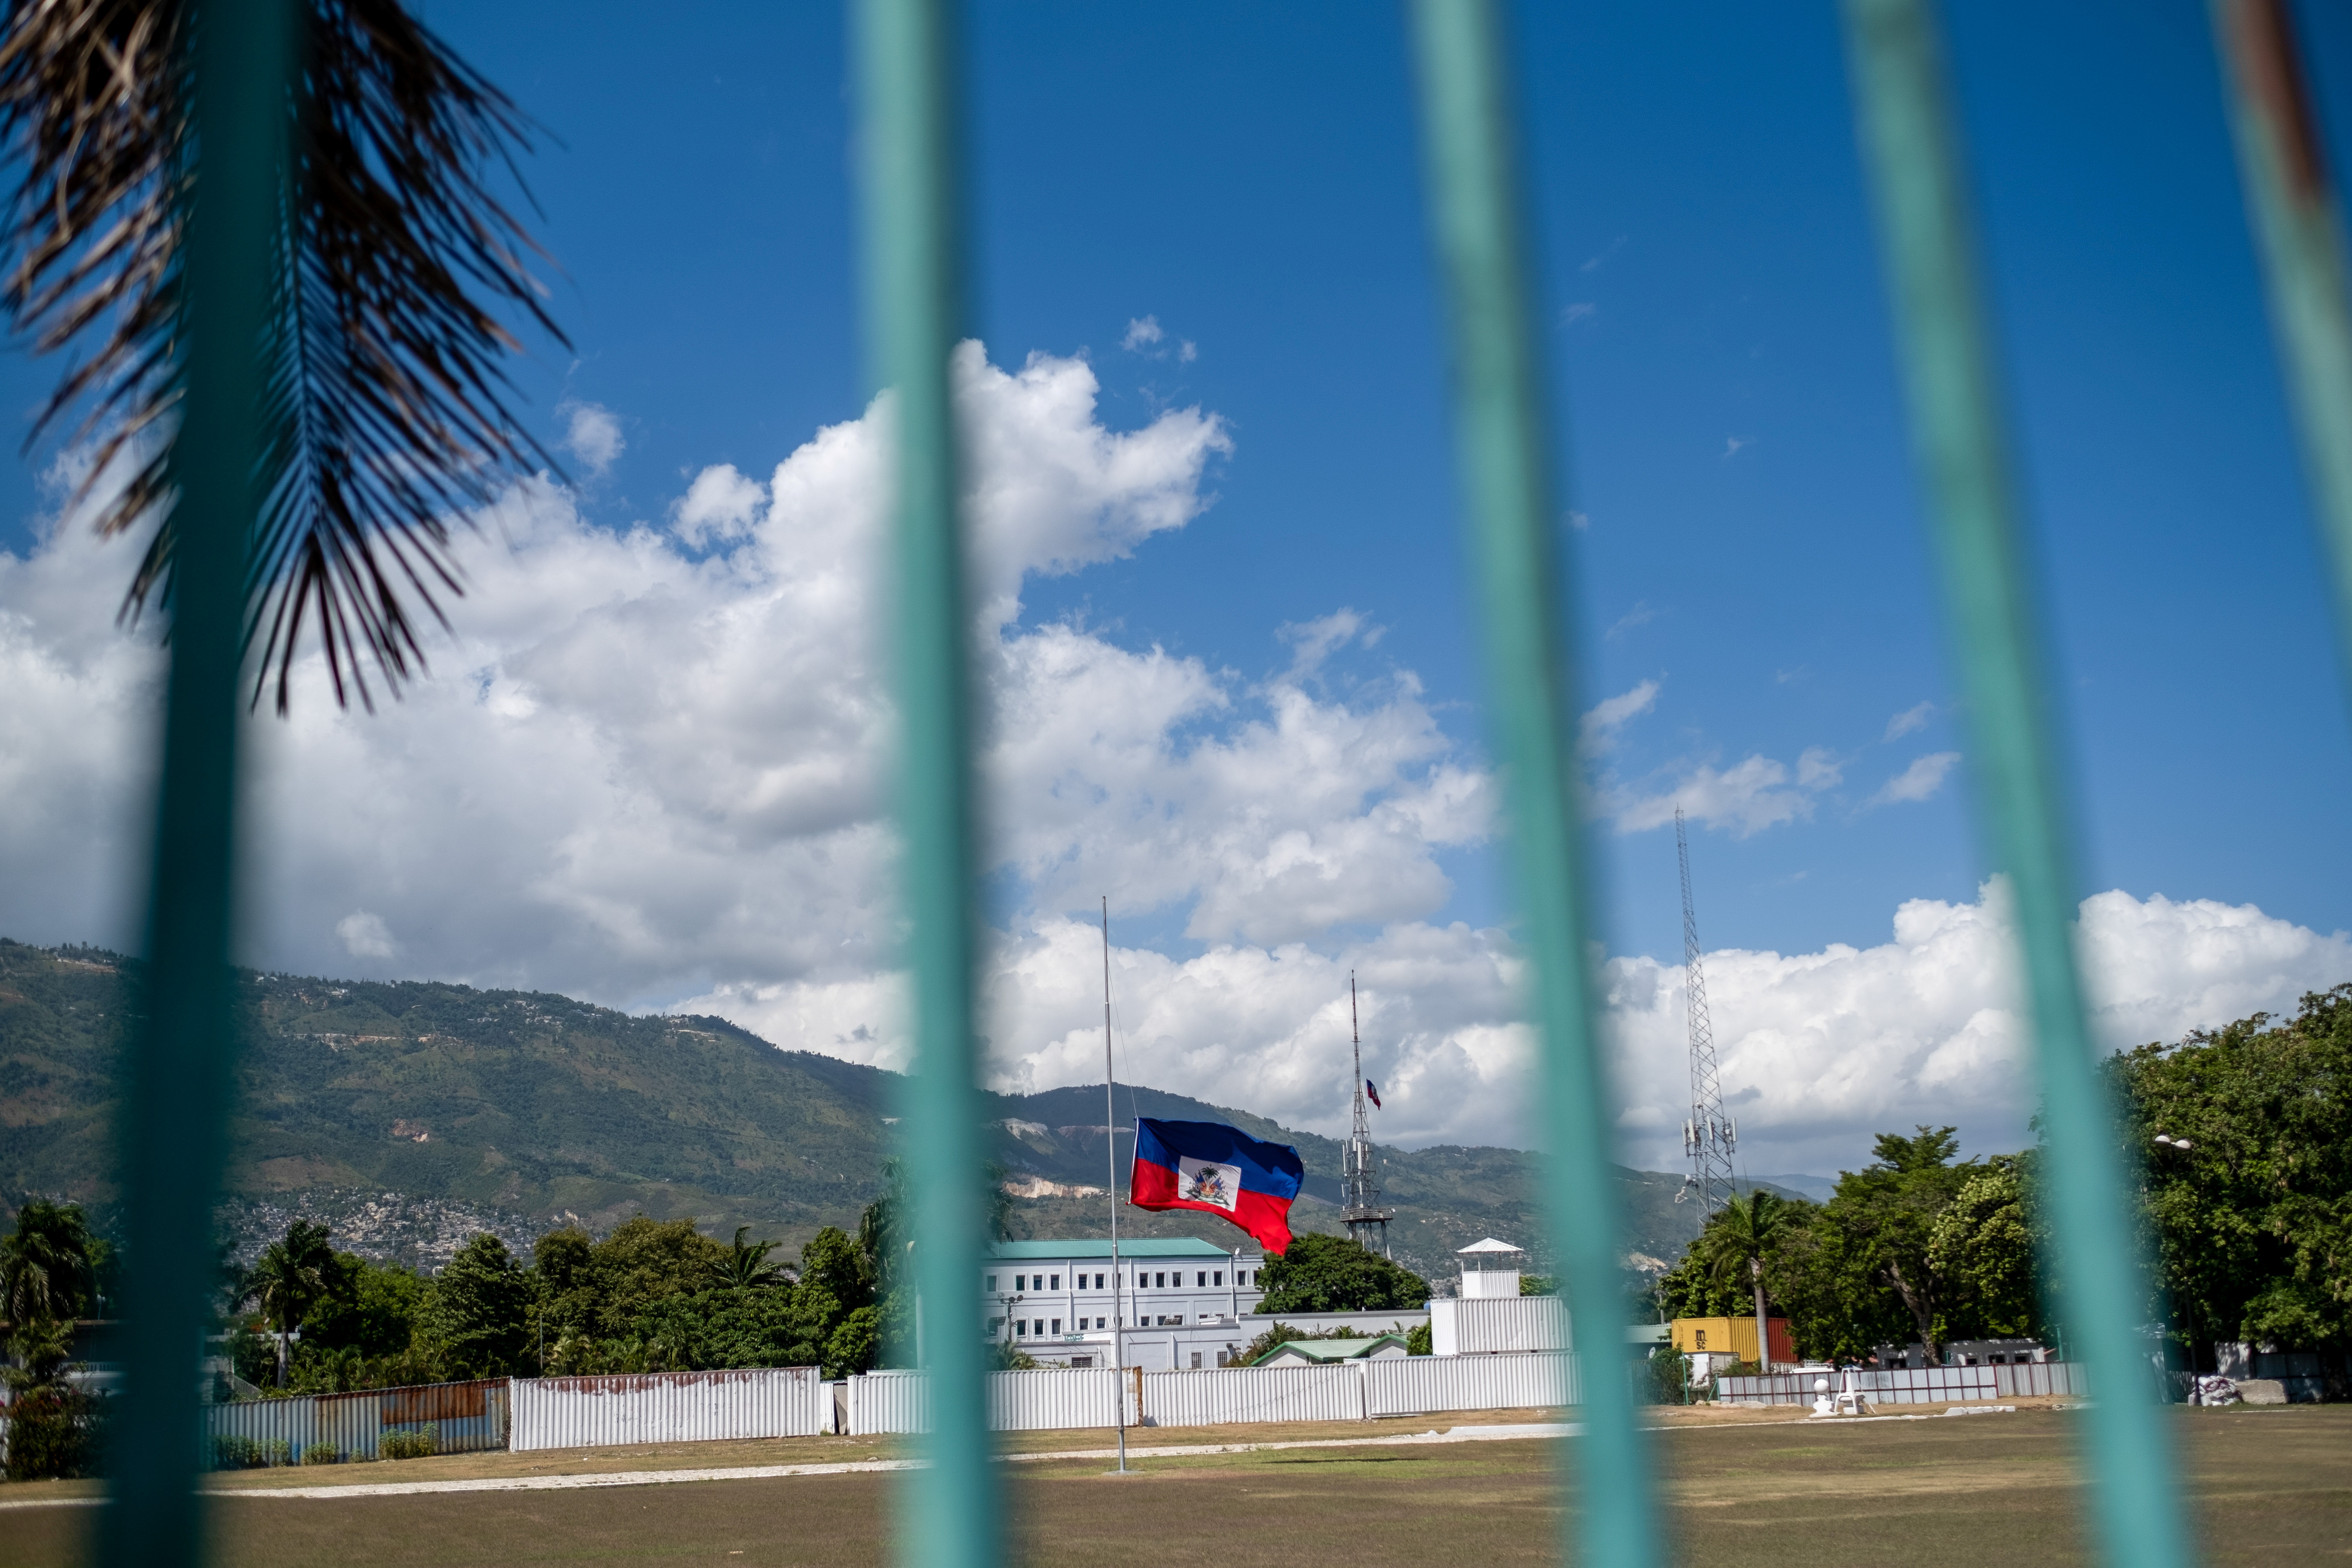 The Haitian national flag waves at half-mast where the Haitian Presidential Palace used to be following the assassination of President Jovenel Moise, in Port-au-Prince, Haiti July 10, 2021. REUTERS/Ricardo Arduengo